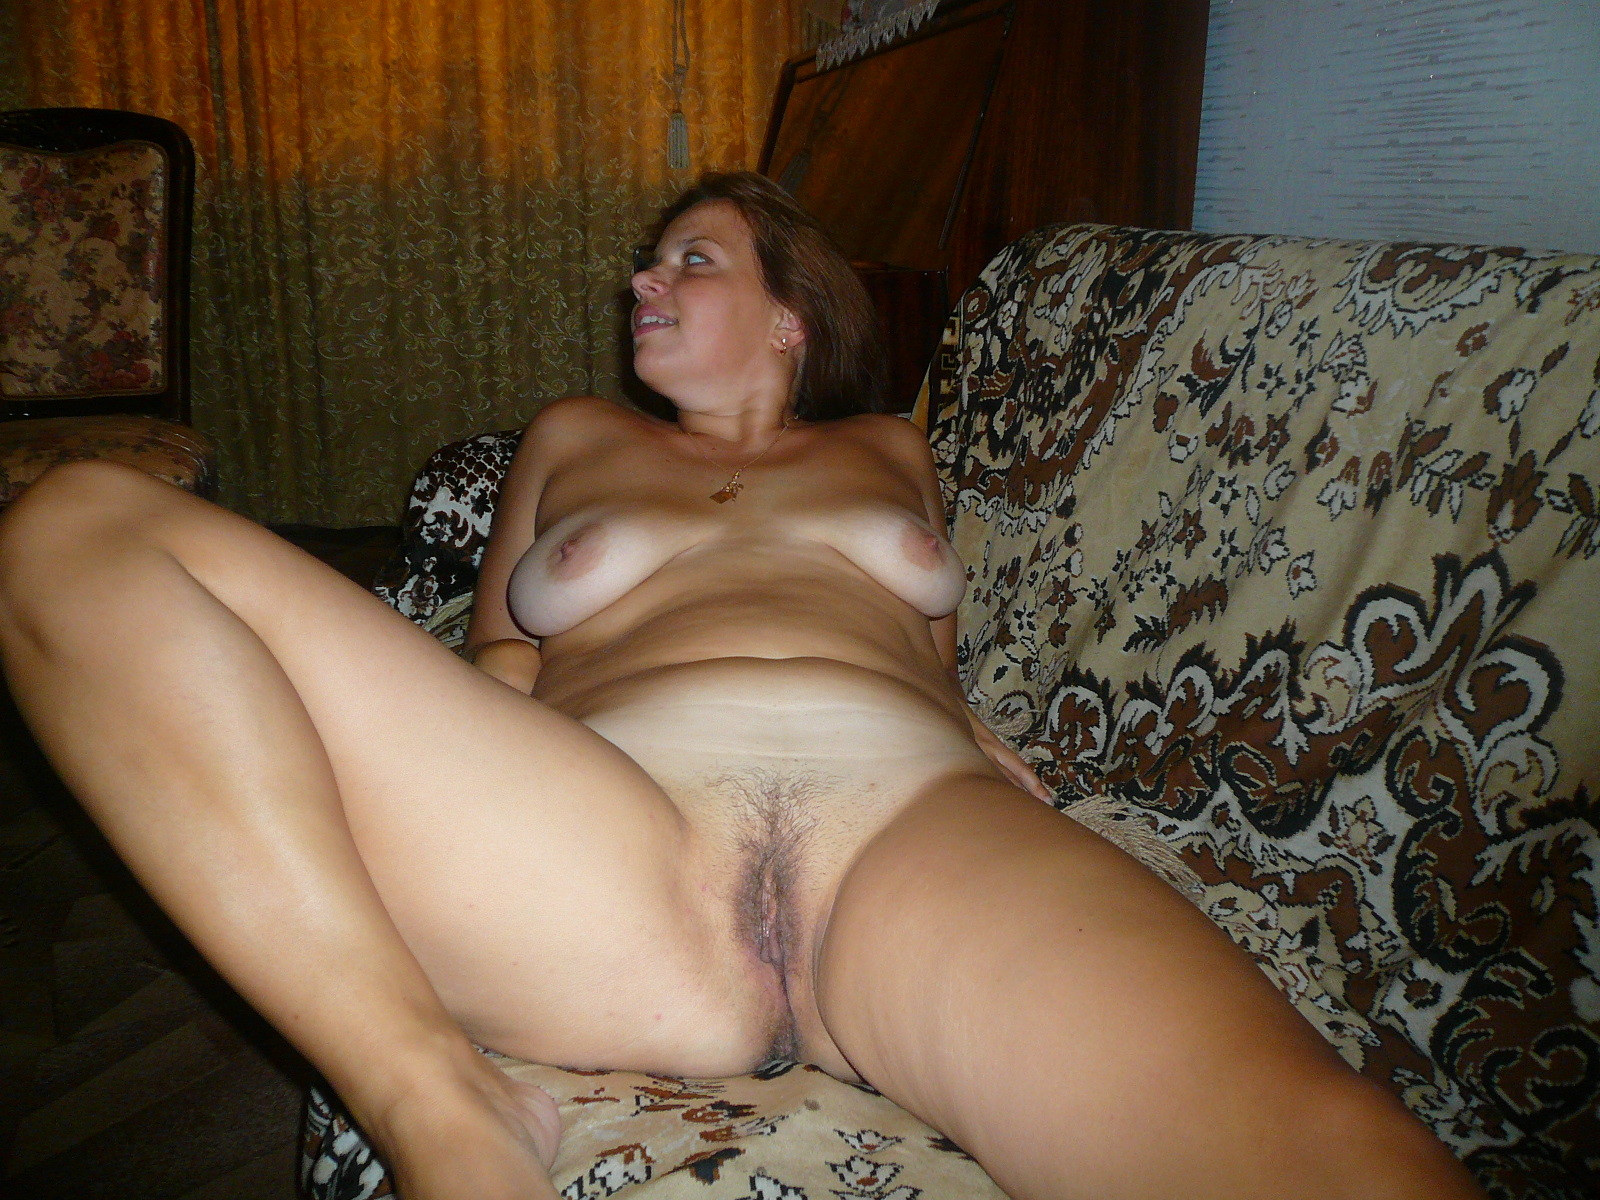 Hot Nude Adult